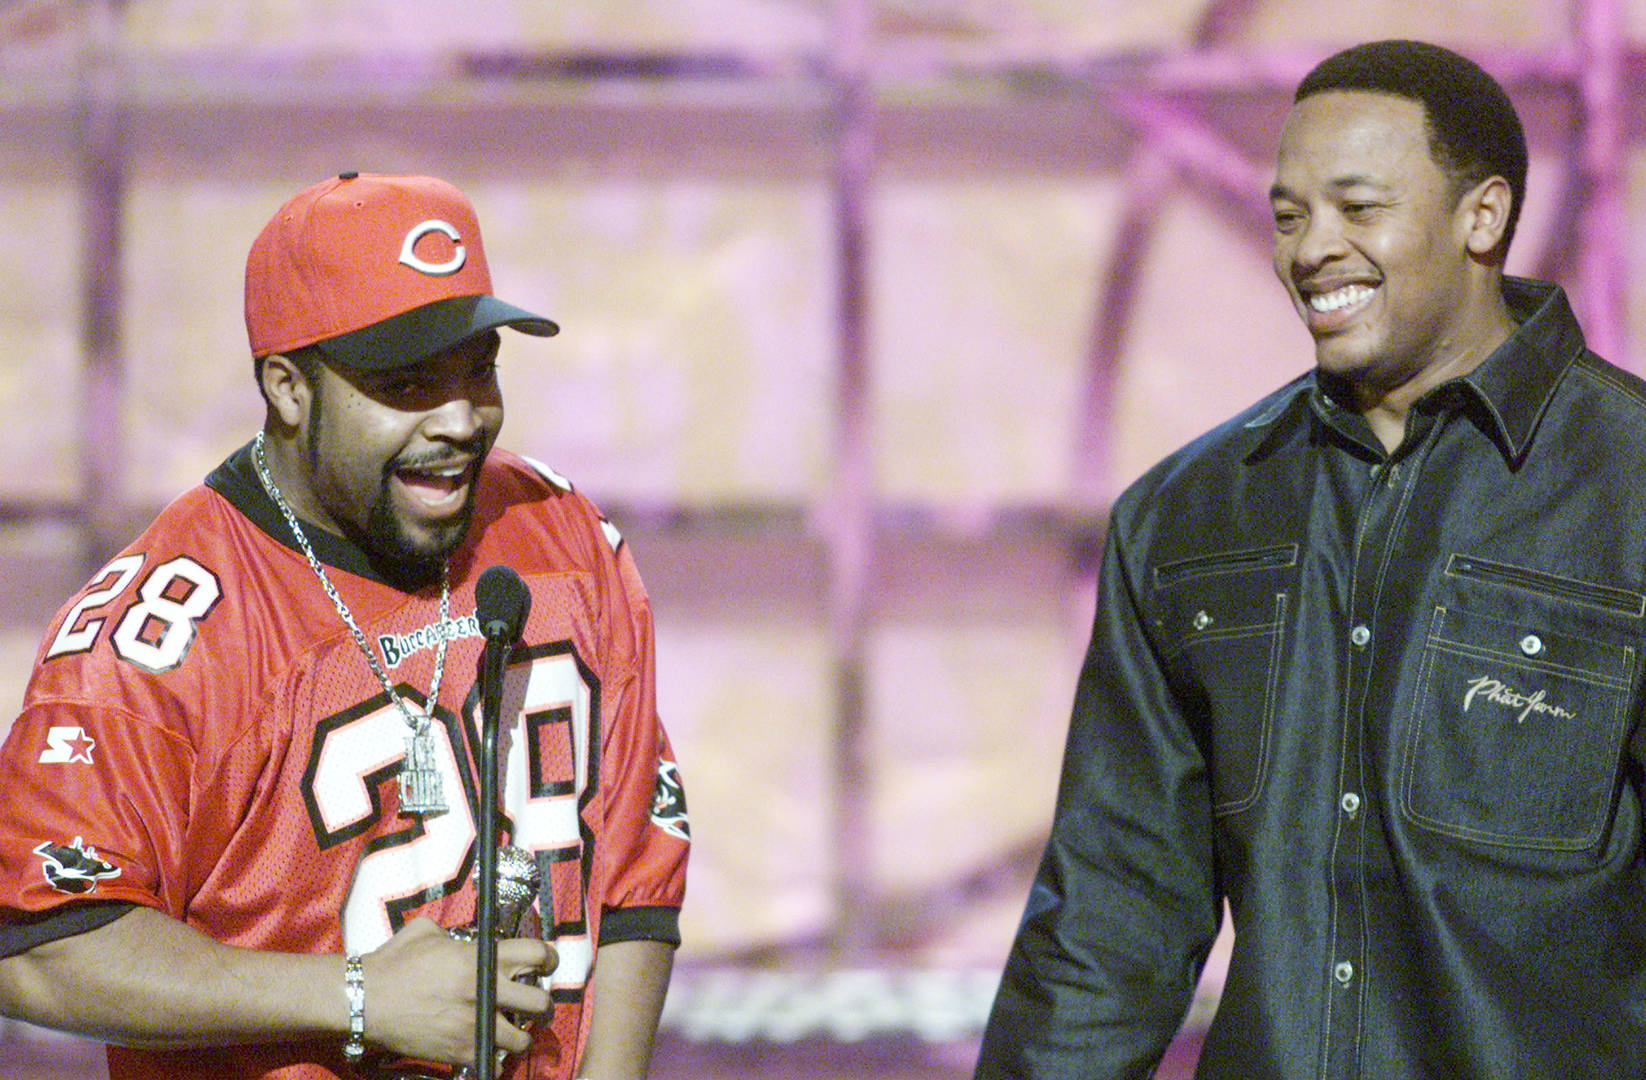 Ice Cube, Dr. Dre